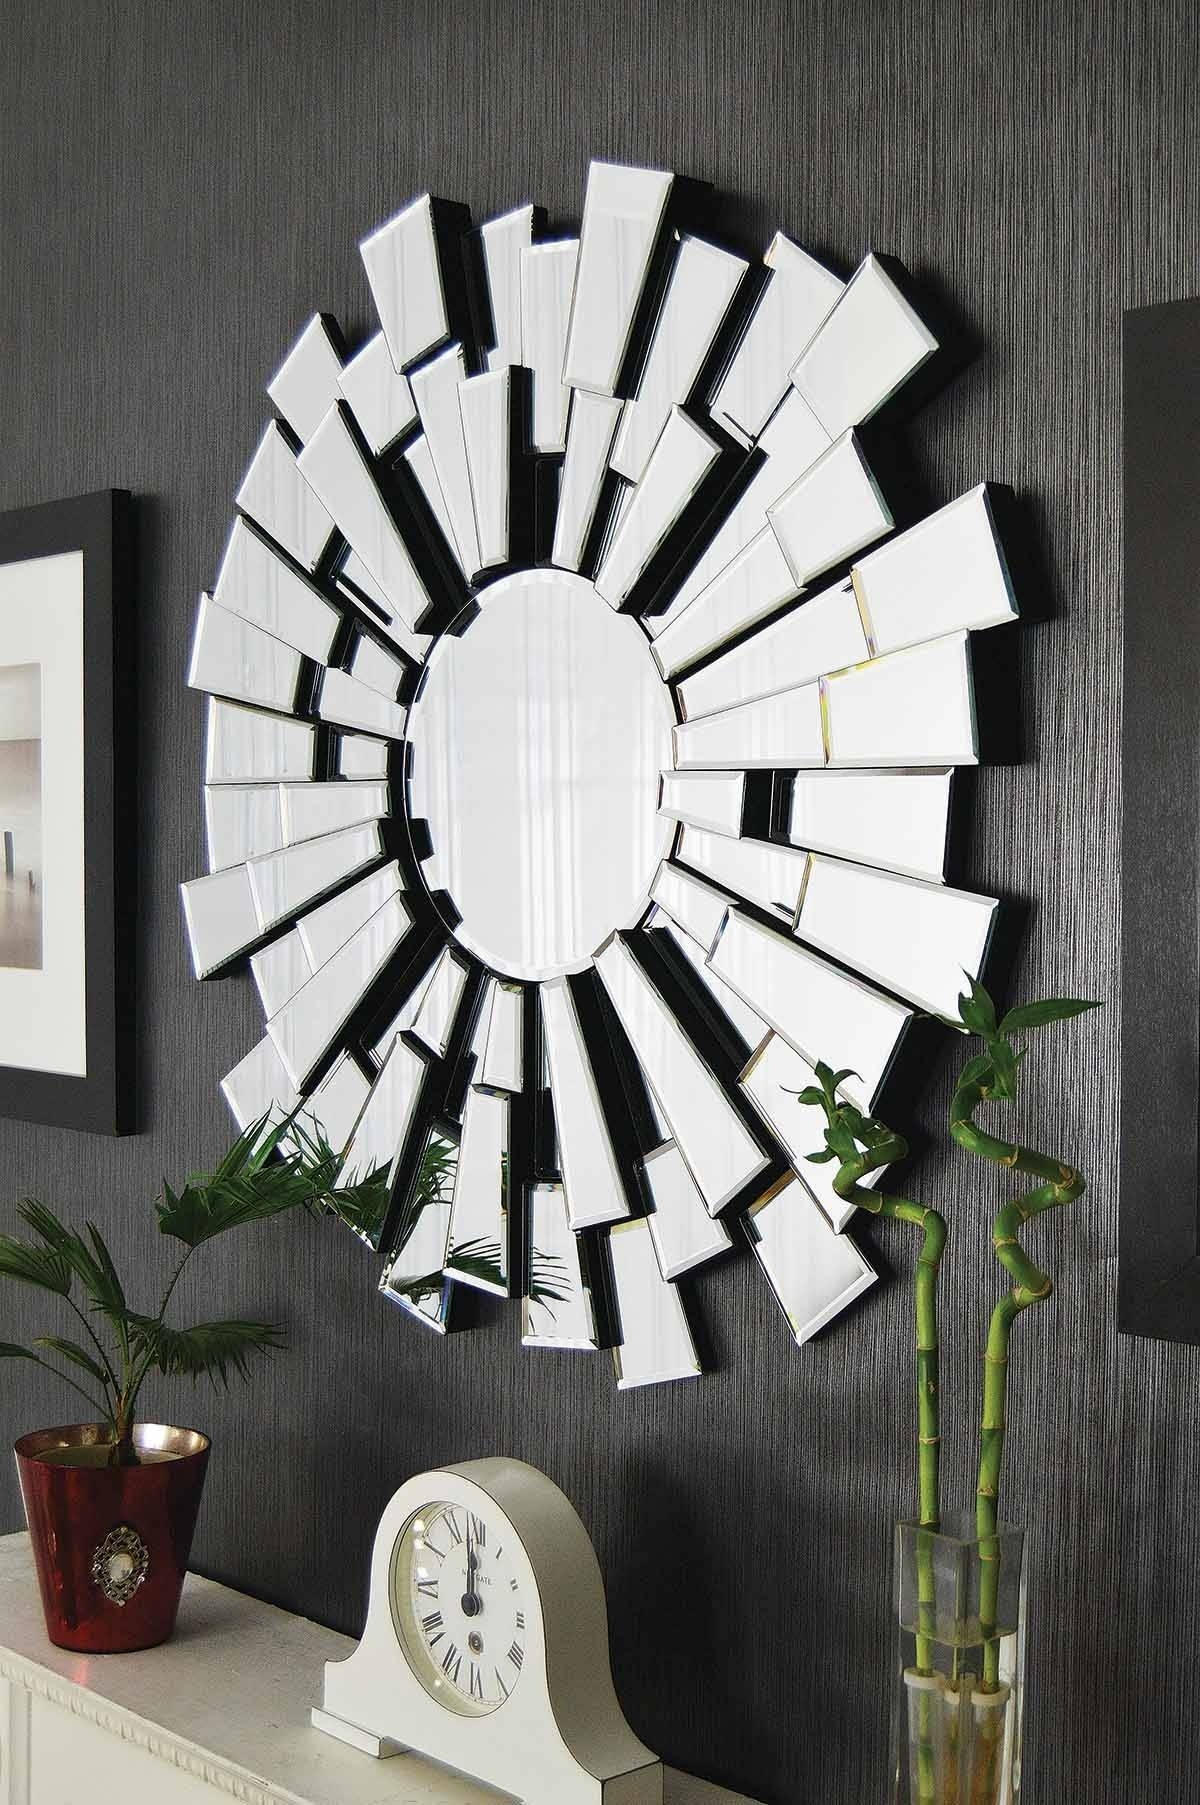 Large Circular Wall Mirrors 32 Beautiful Decoration Also Large with regard to Large Circle Mirrors (Image 15 of 25)